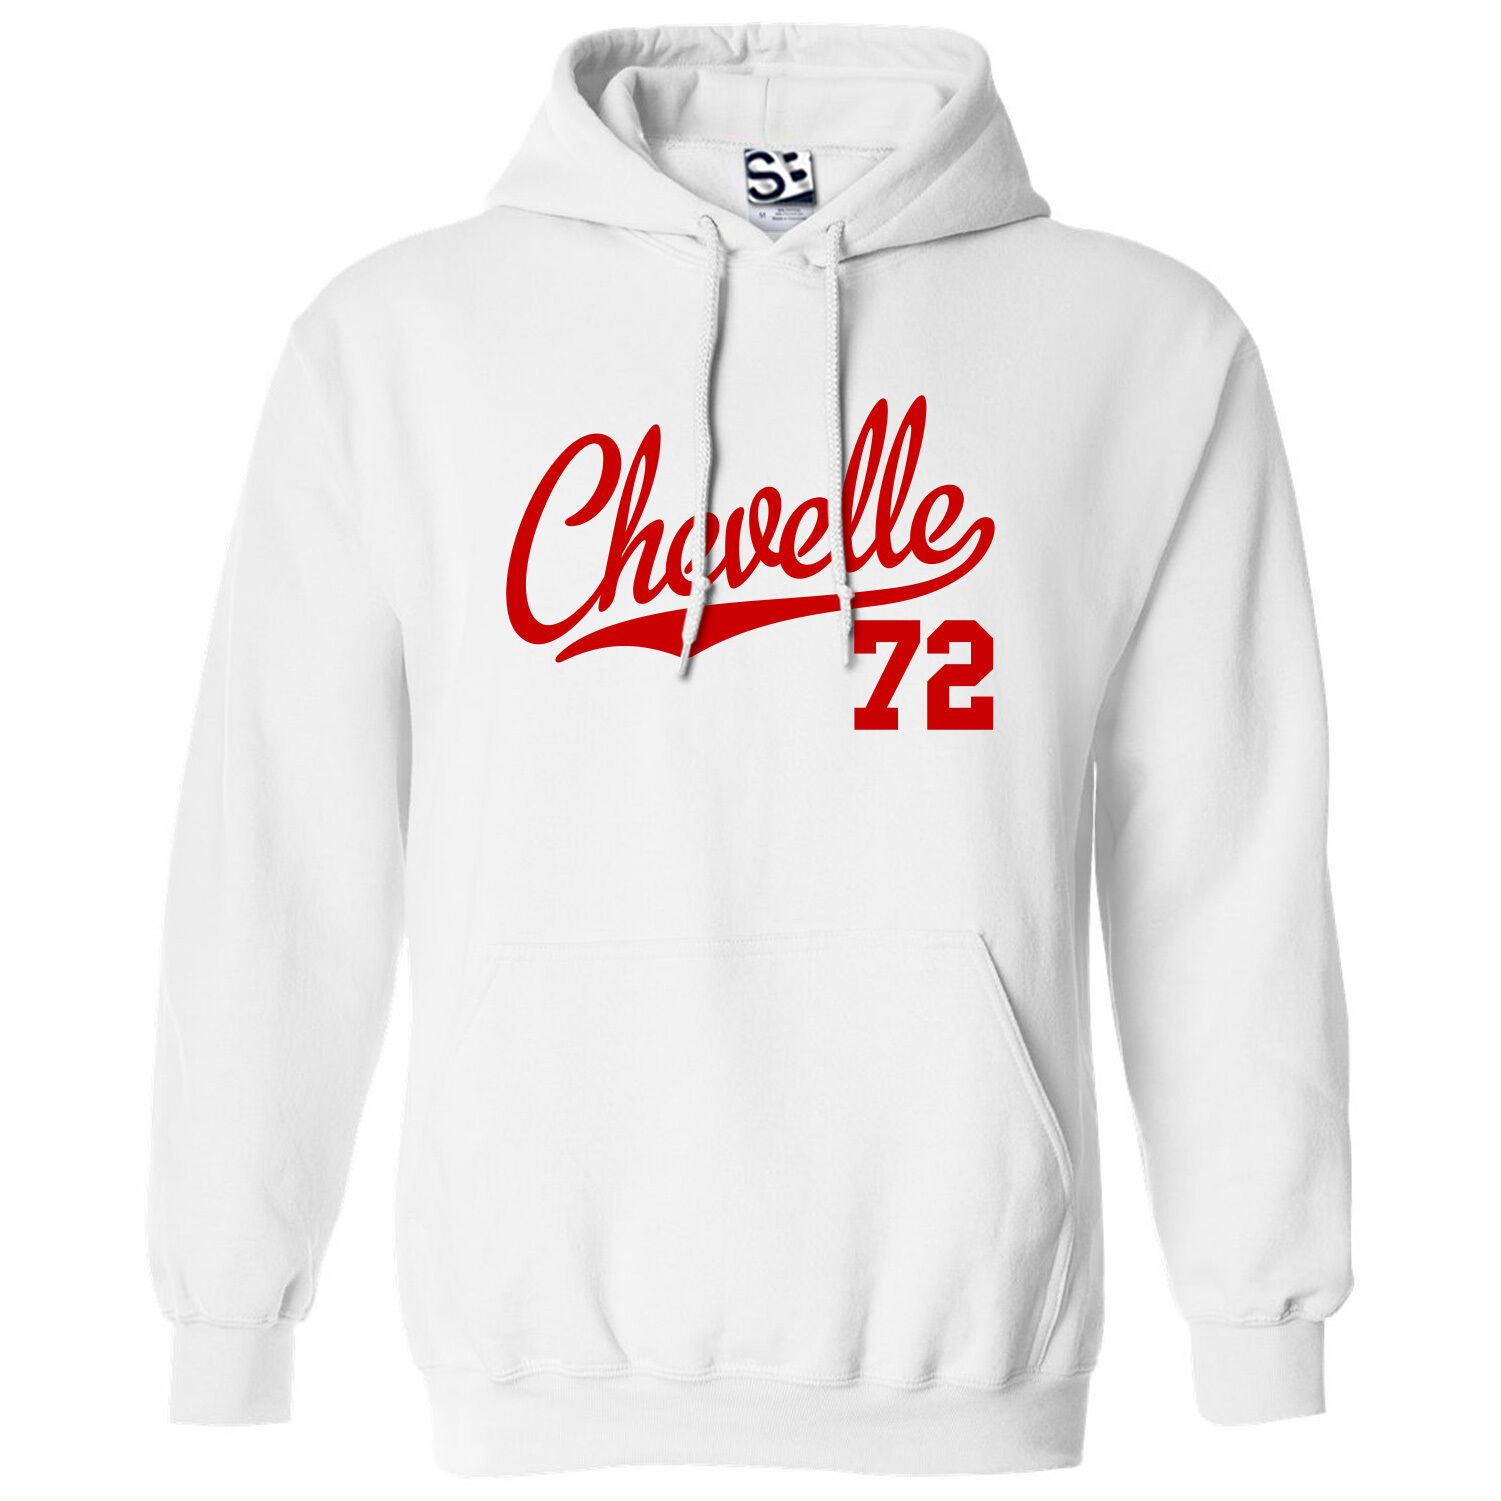 Chevelle 72 Script & Tail HOODIE - Hooded 1972 Muscle Car Sweatshirt All Farbes